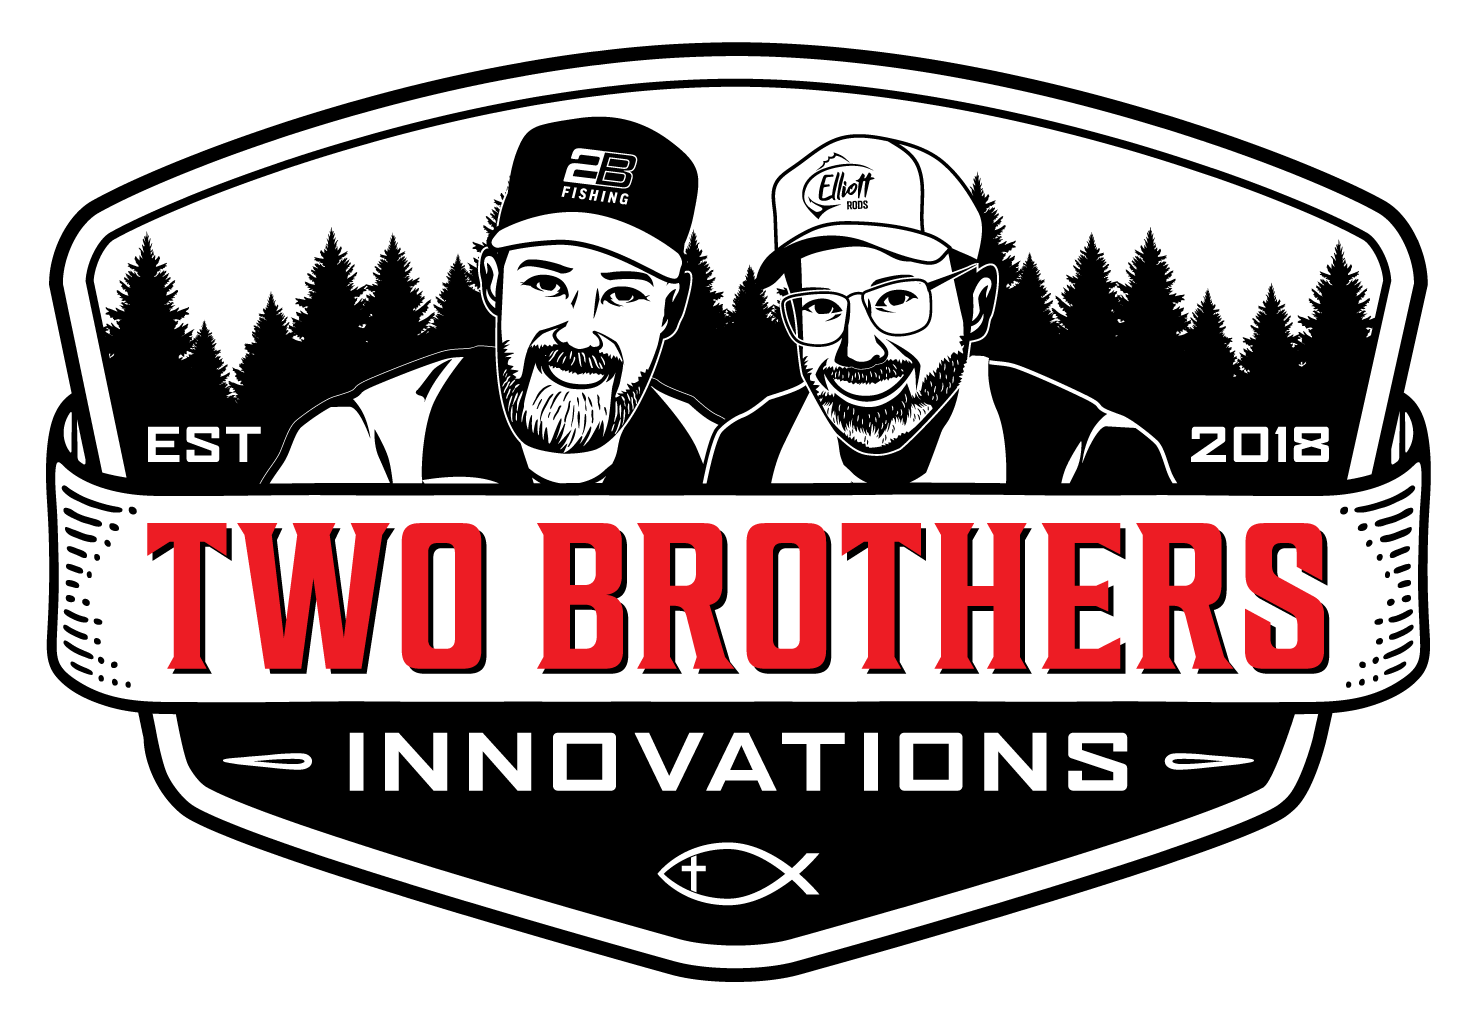 Two Brothers full color logo